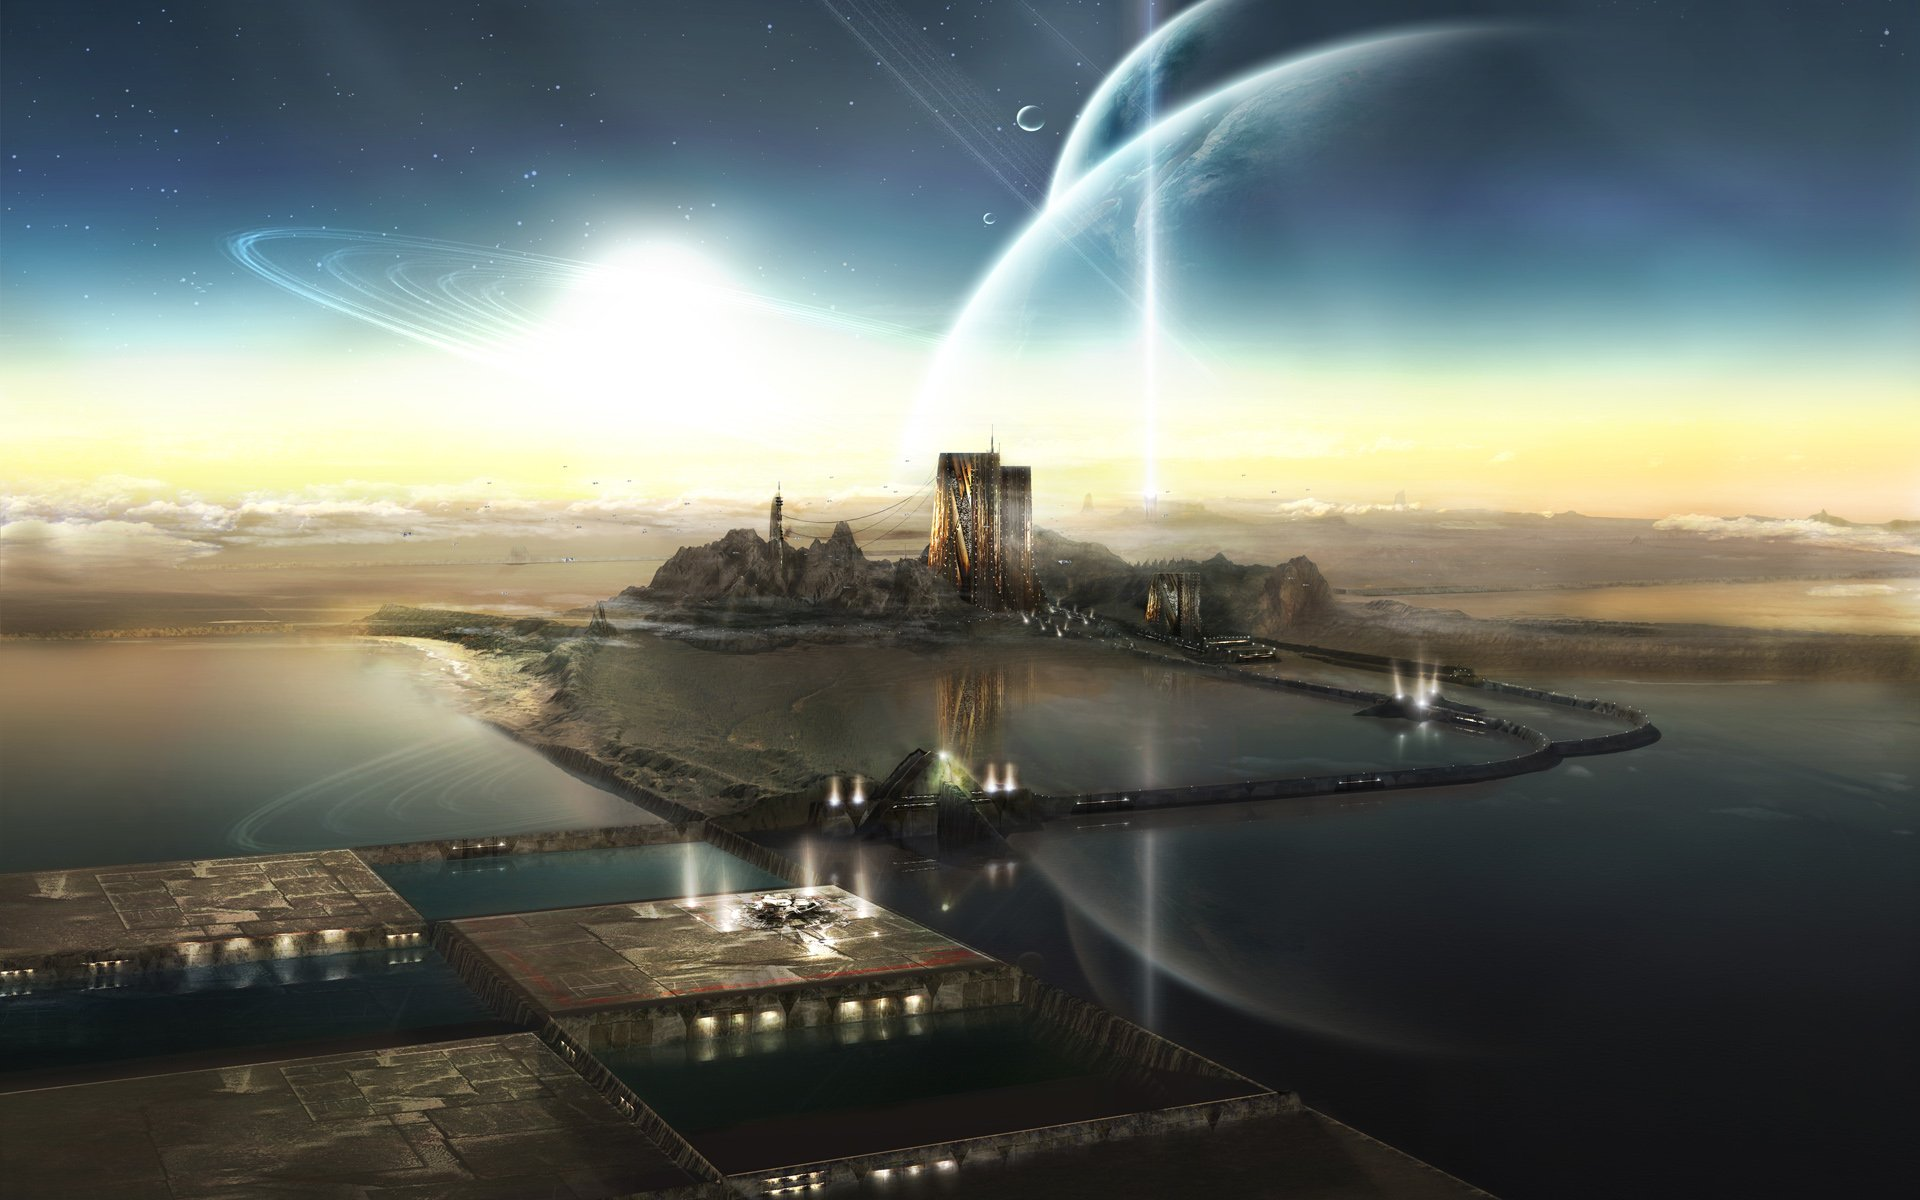 Science-Fiction - Großstadt  Science-Fiction Landschaft Wasser Mond Planet Wallpaper